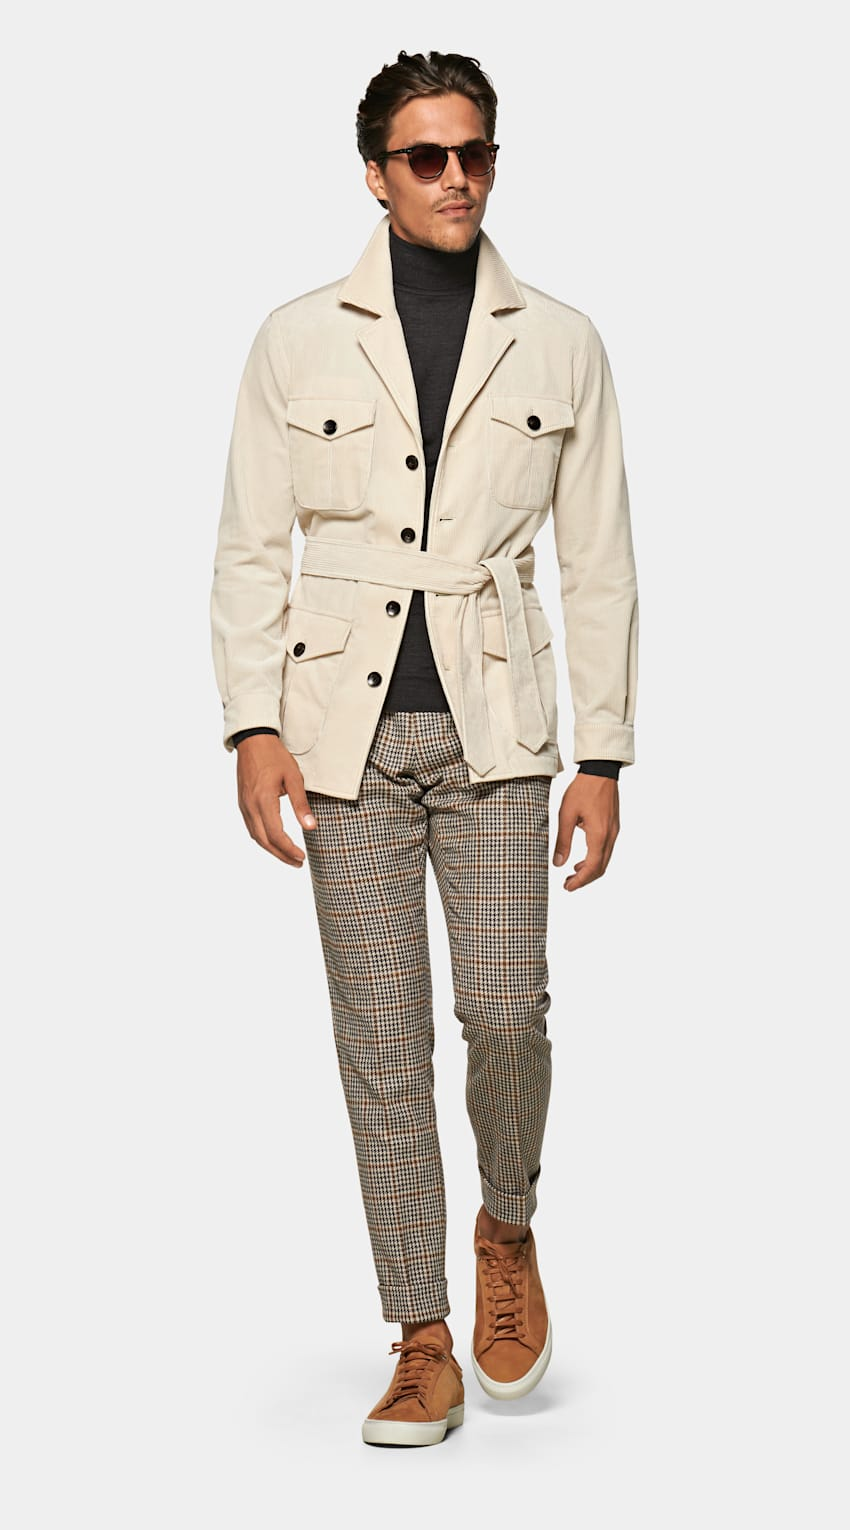 FUWEIHU Ecological System For Clothes Men/'s Tan Safari Style Jacket Blazer With Suede Accents US Size 44 Large Chinese size 190